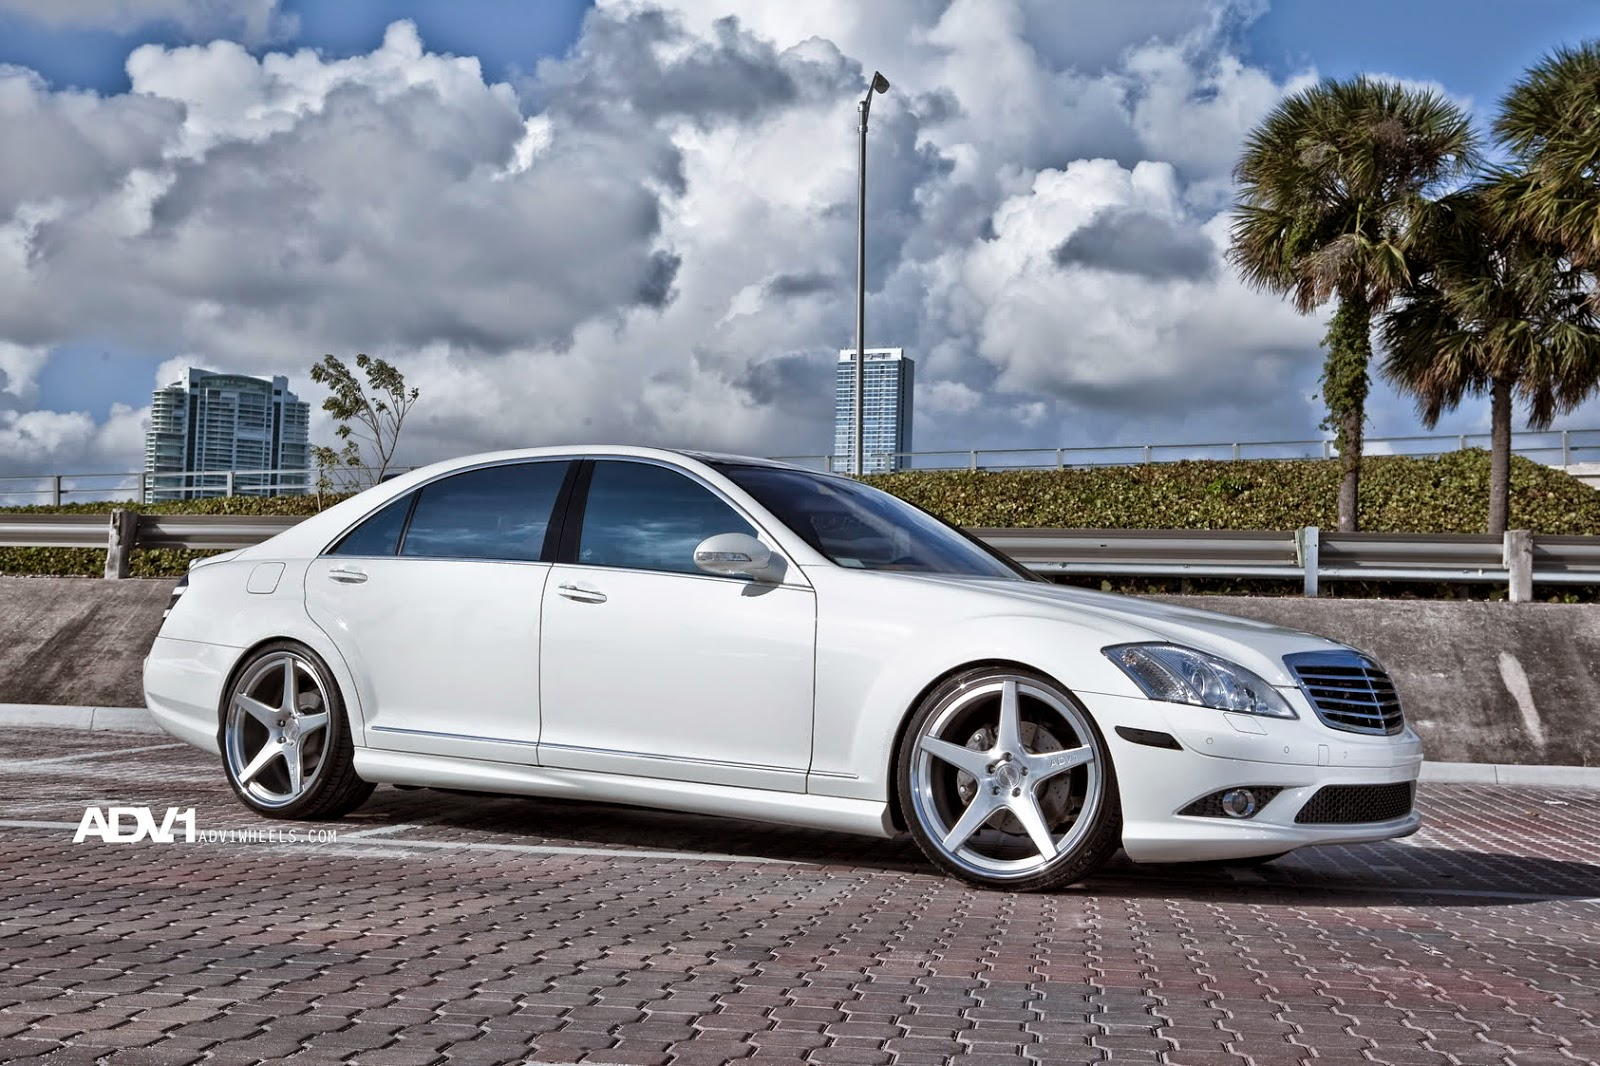 mercedes benz w221 s550 on adv 1 wheels benztuning